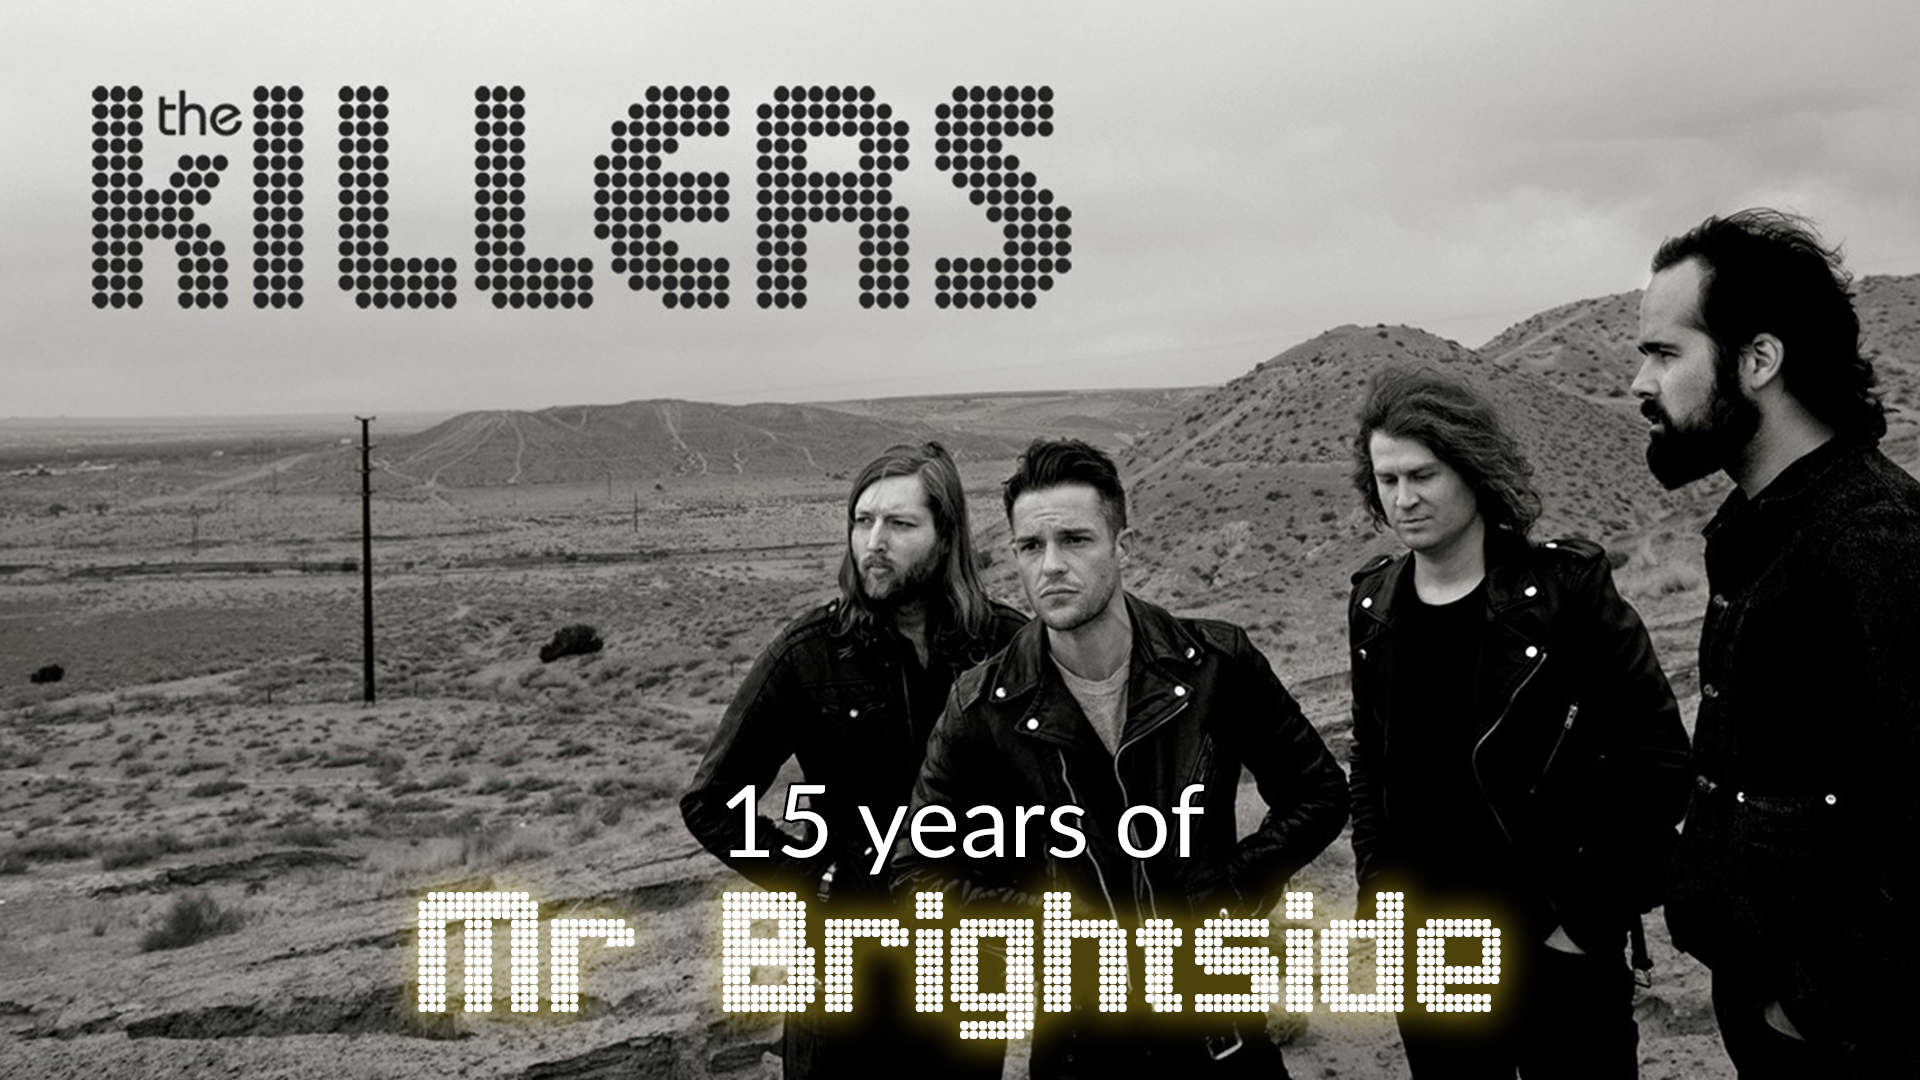 the-killers-15-years-of-mr-brightside-reminisent